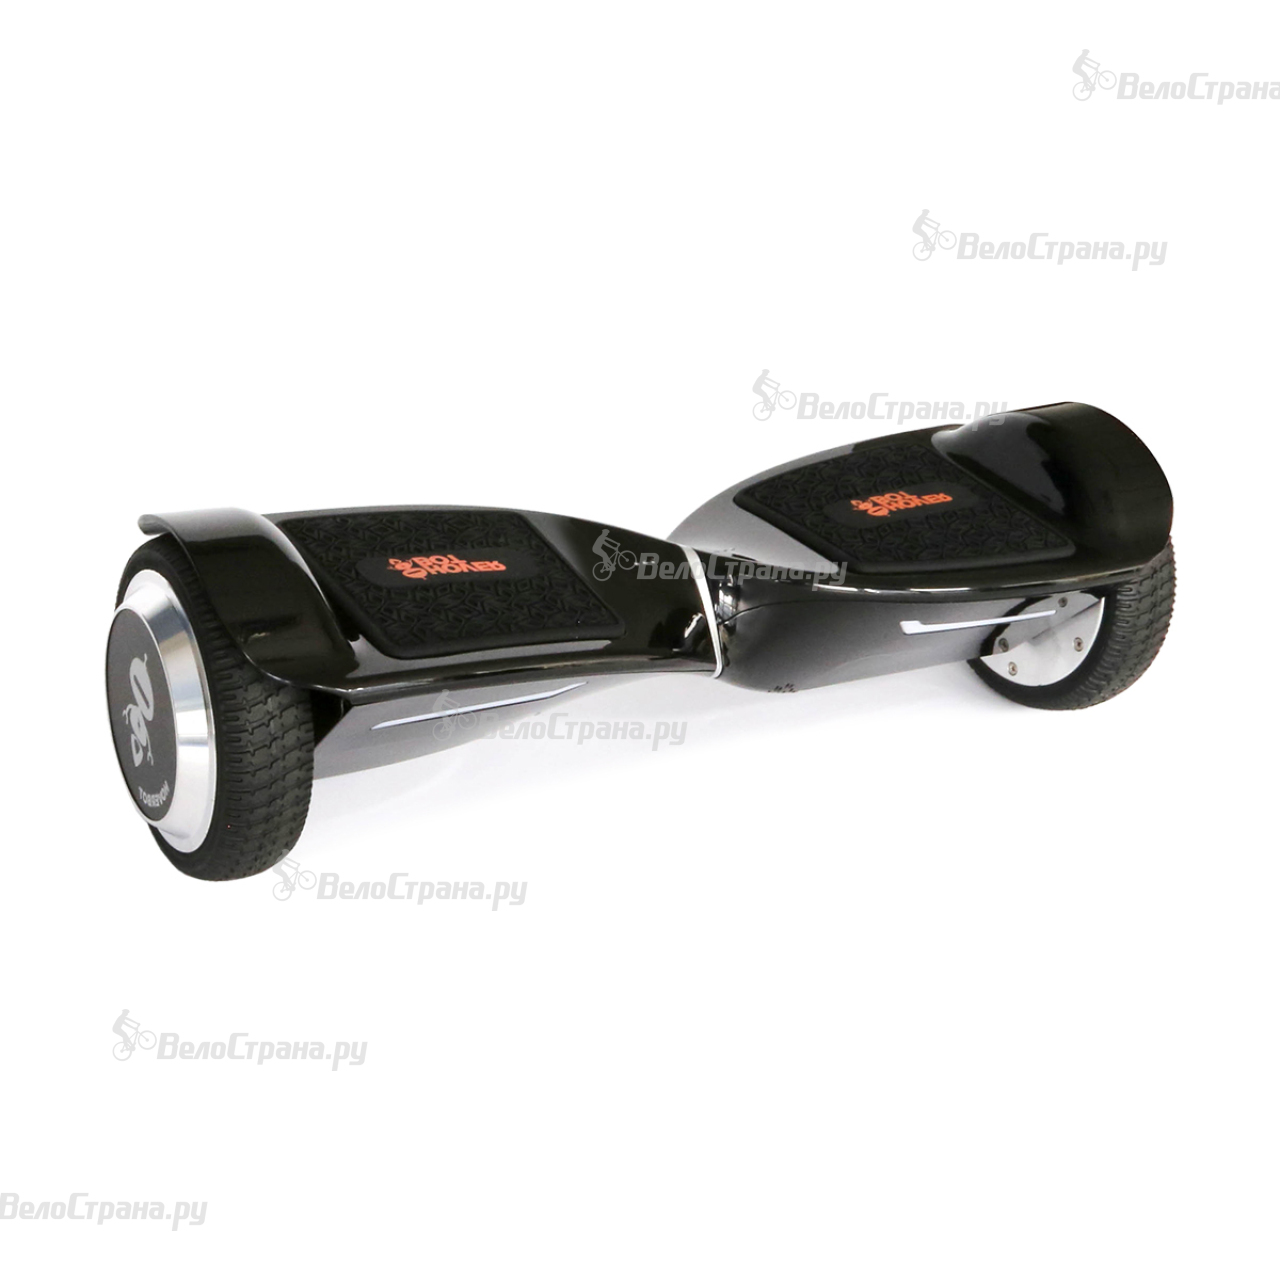 Гироскутер Hoverbot A-11R Premium гироскутер hoverbot c 1 premium пламя